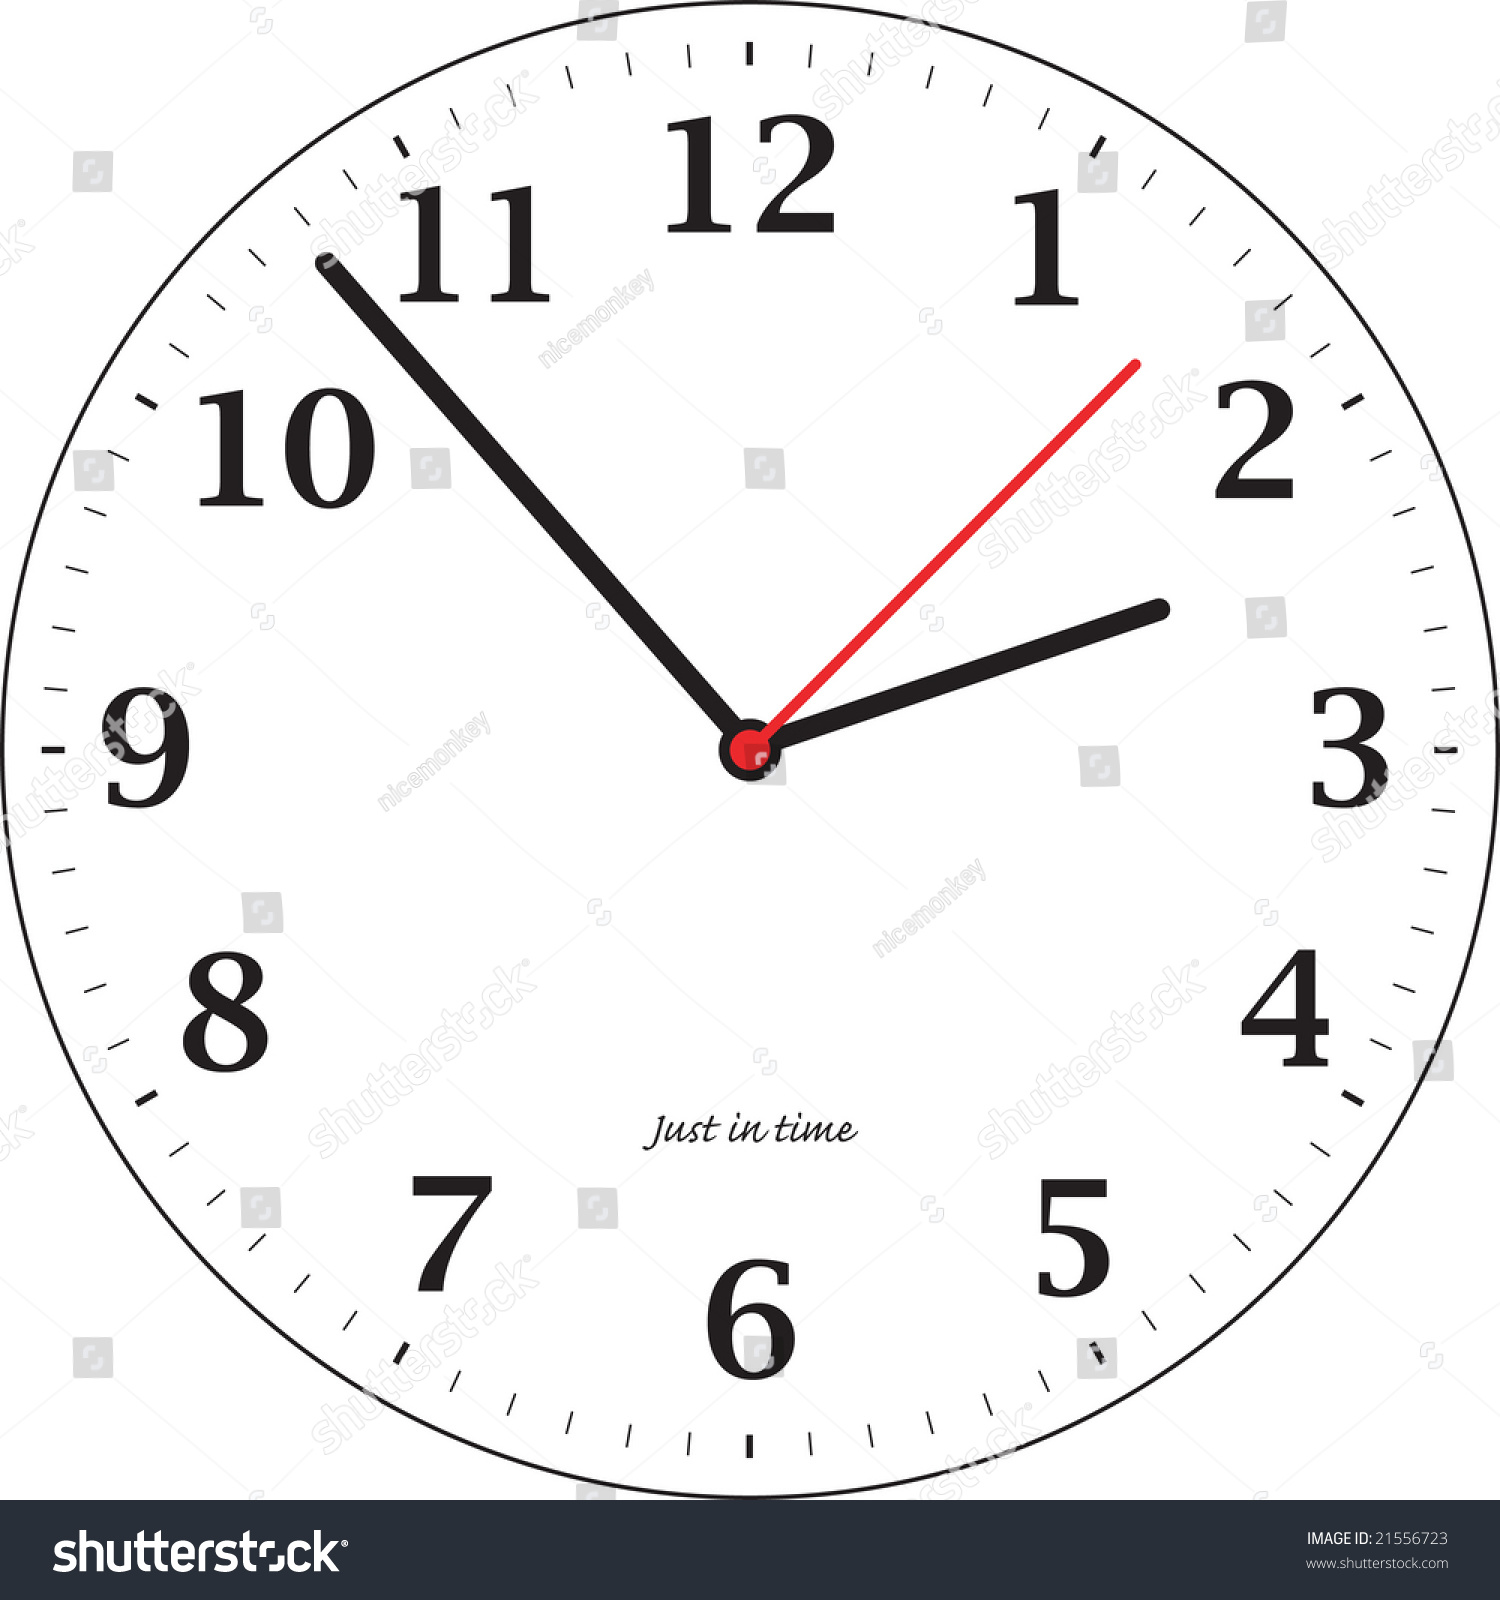 Worksheet Clock For Teaching a simple illustrated clock for teaching the time stock photo save to lightbox